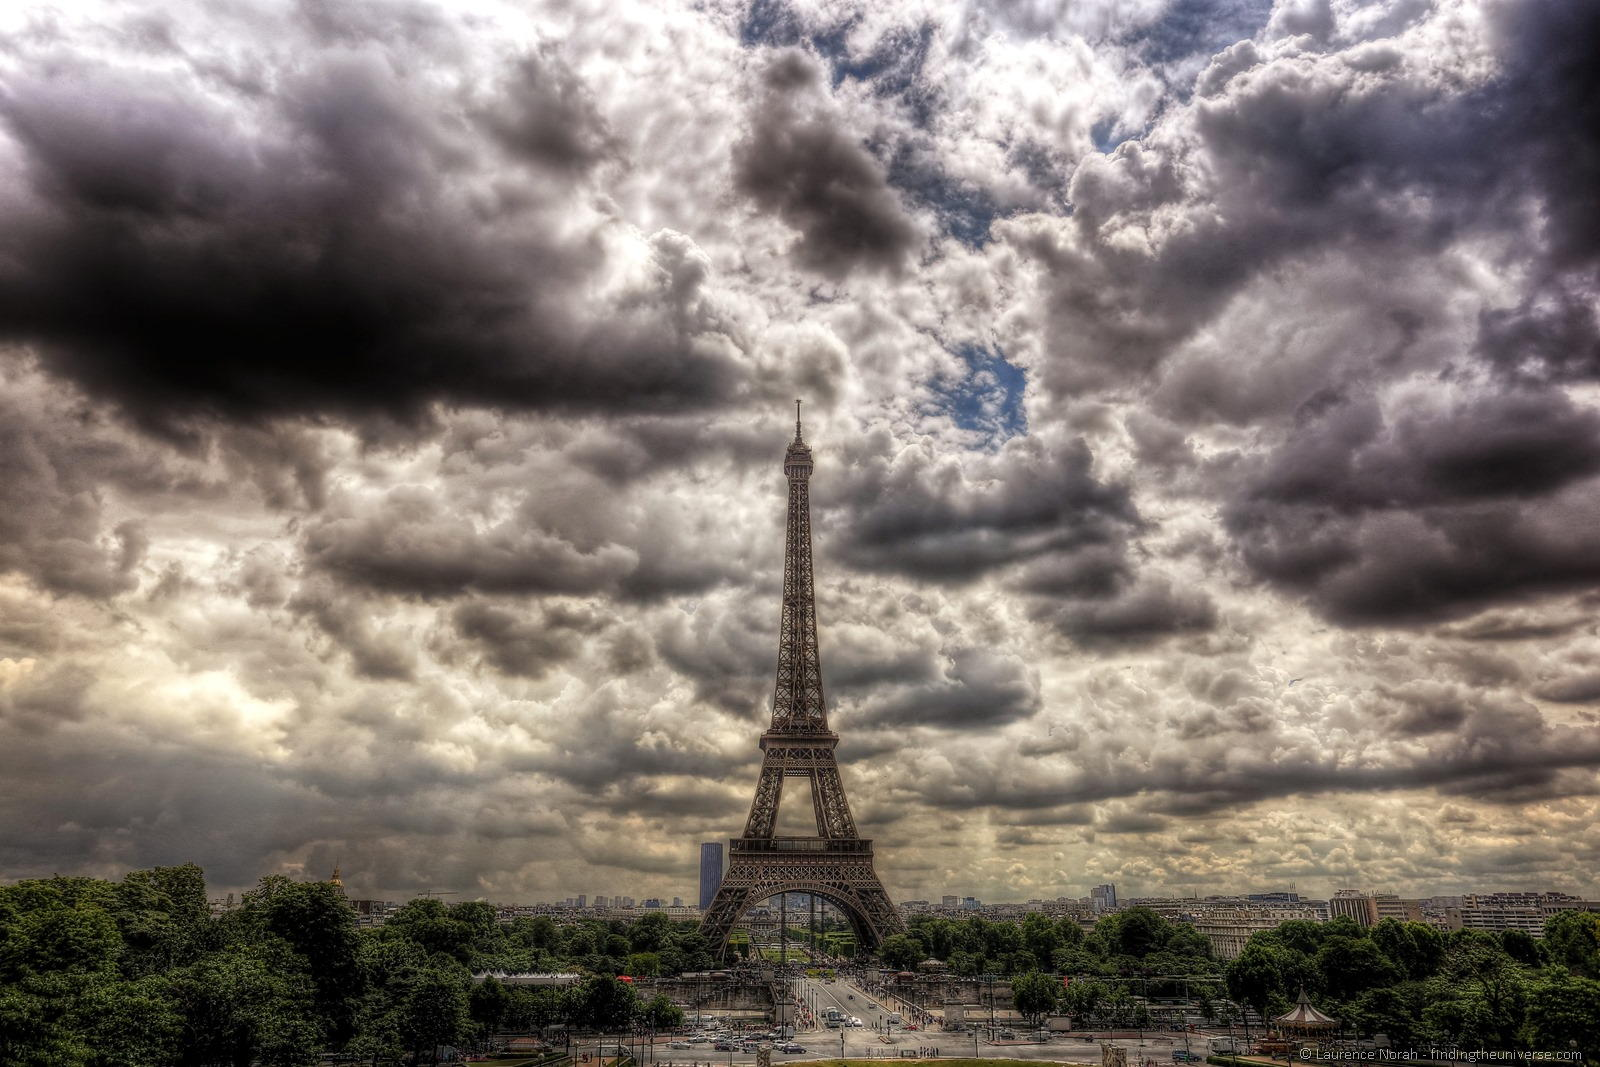 Paris-Eiffel-Tower-HDR-2a2.jpg (image)